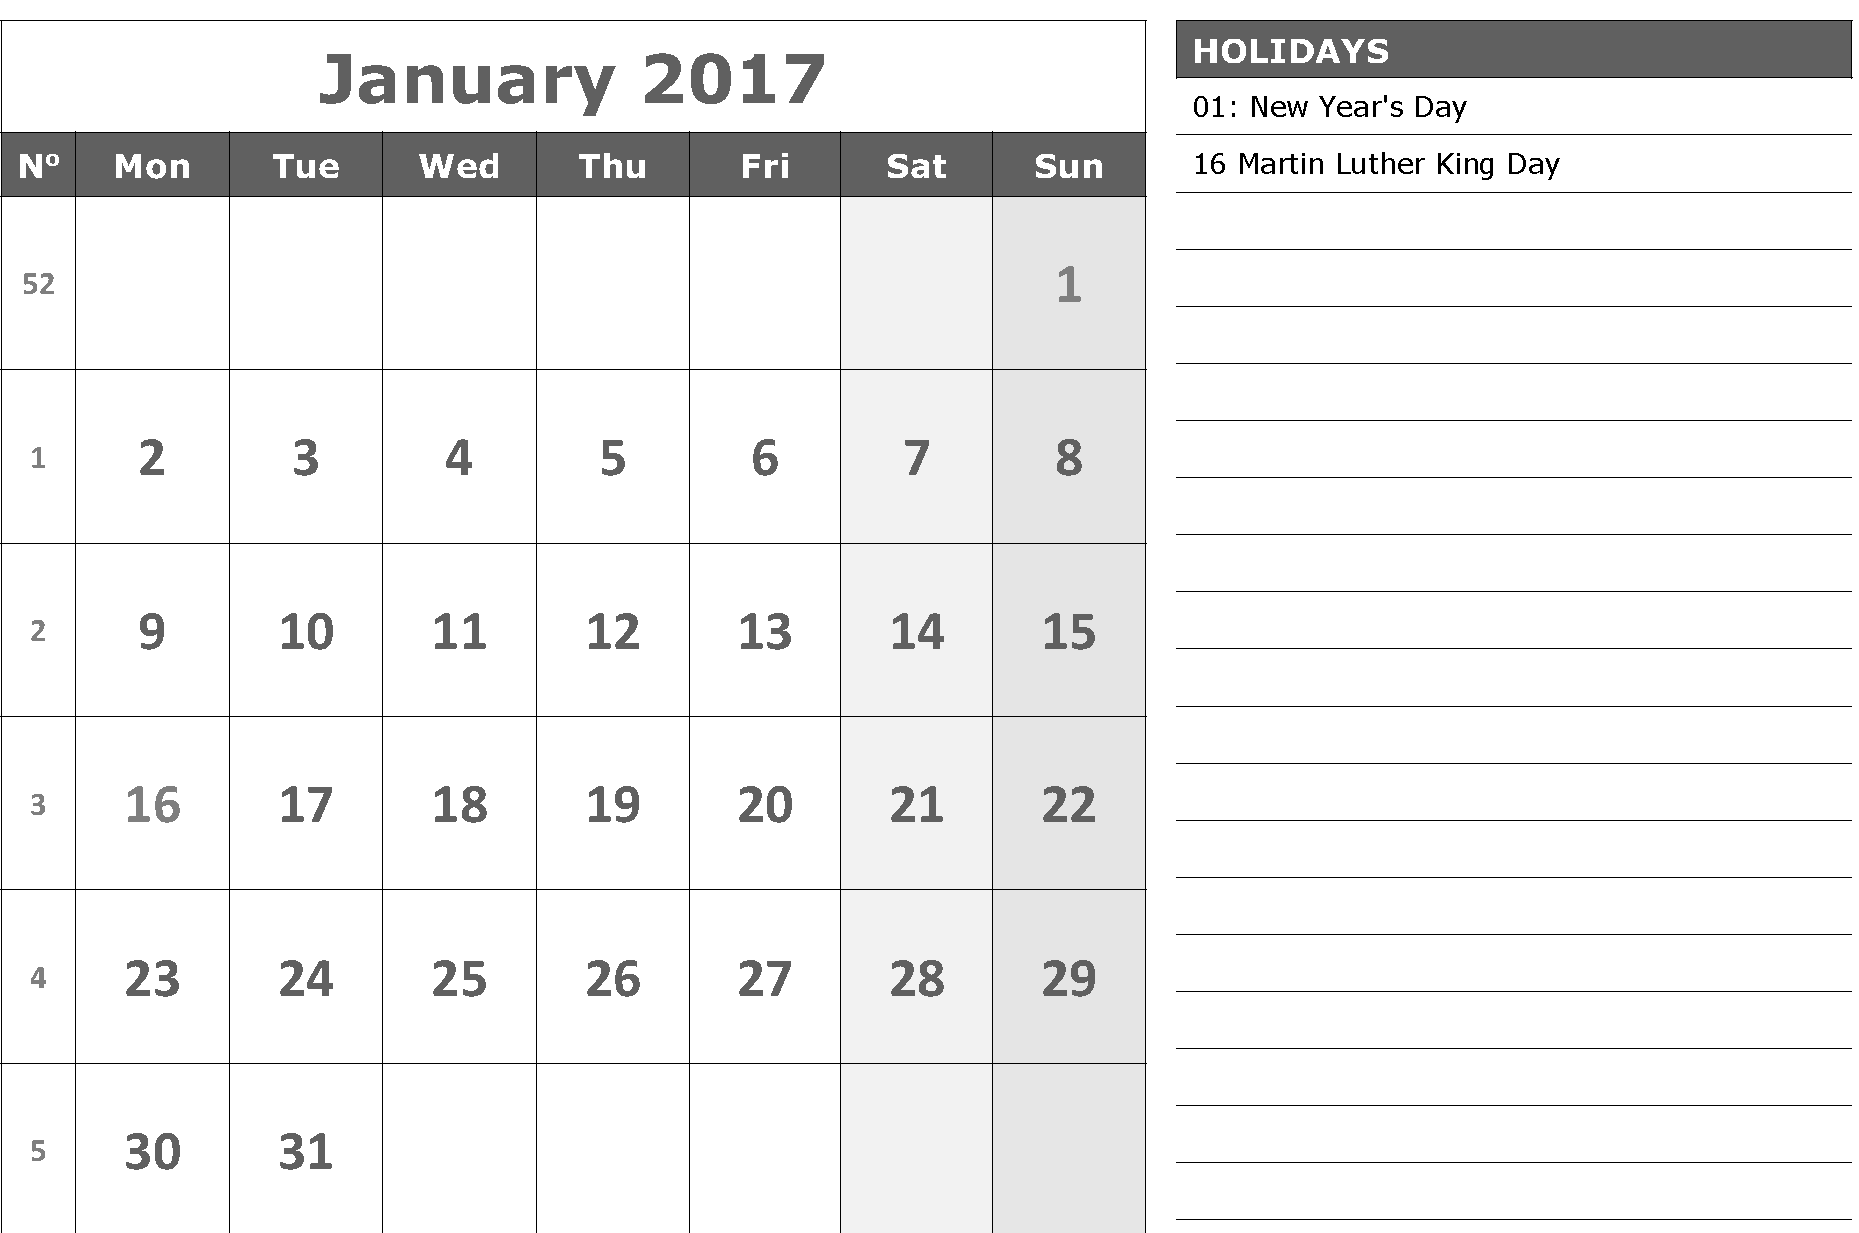 January 2017 calendar with notes